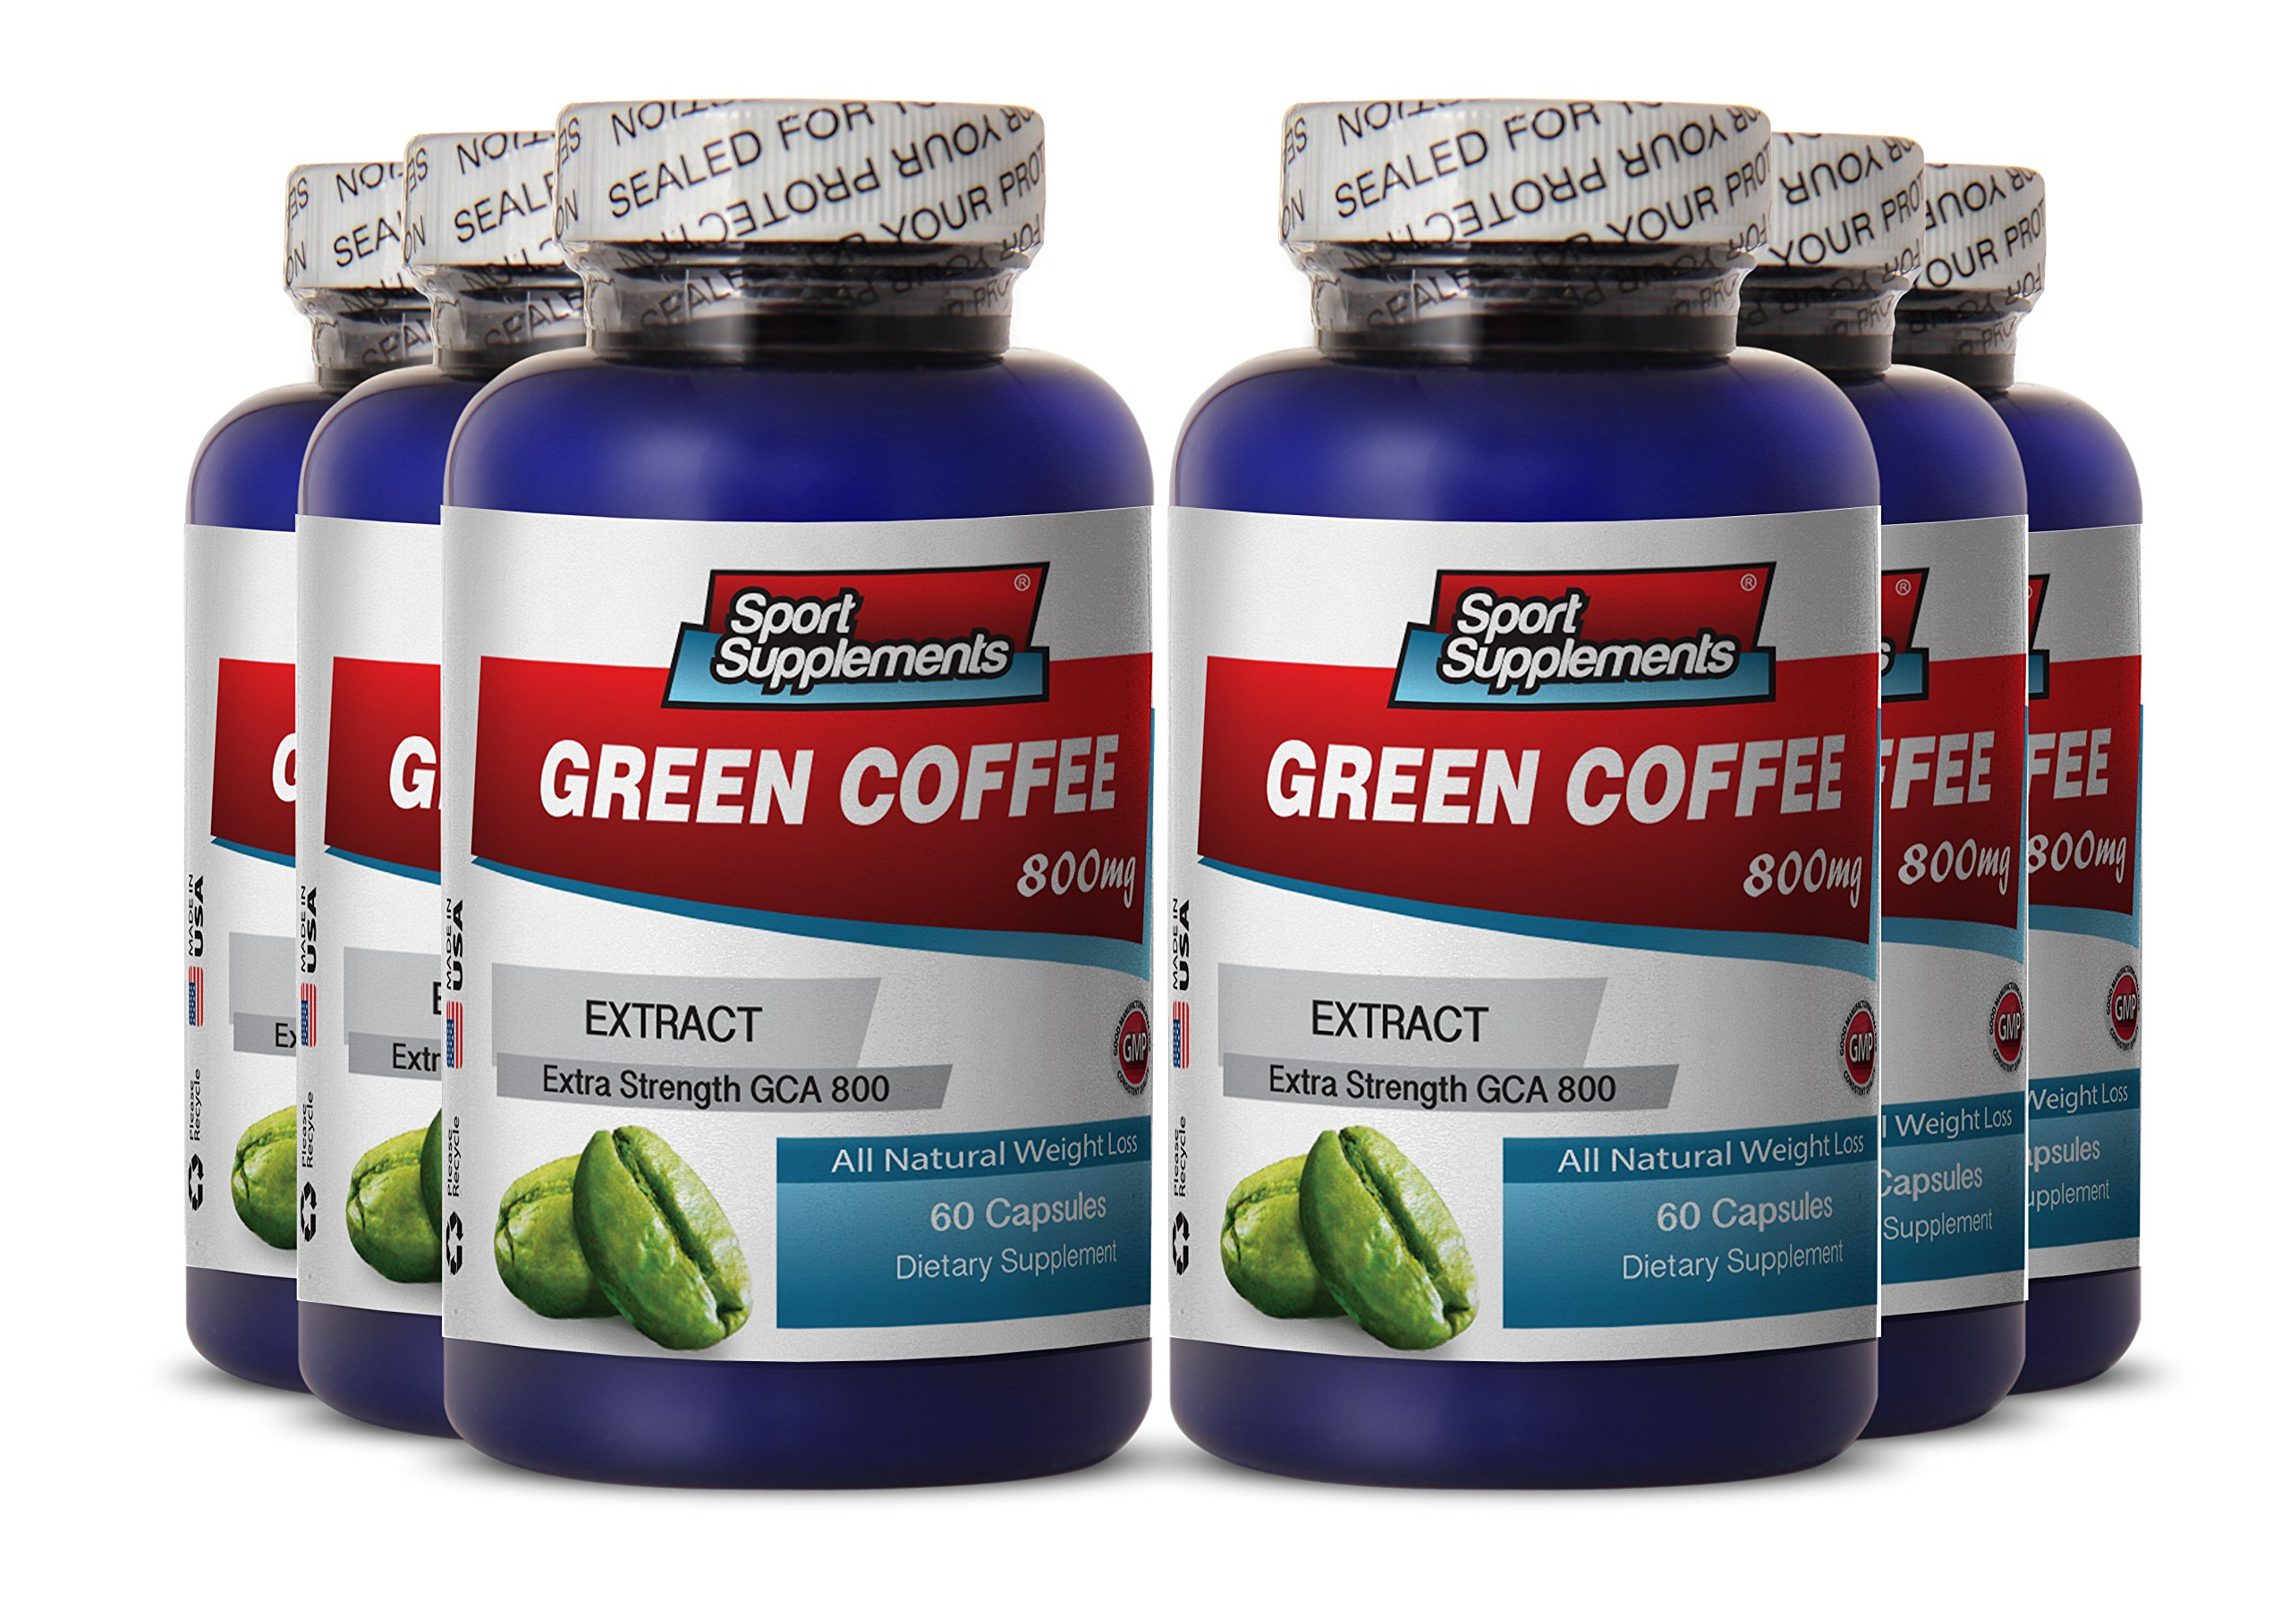 Green Coffee Bean - Green Coffee Extract 800mg - Natural Antioxidant Green Coffee Bean Extract to Burn Fat and Energy (6 Bottles 360 Capsules)